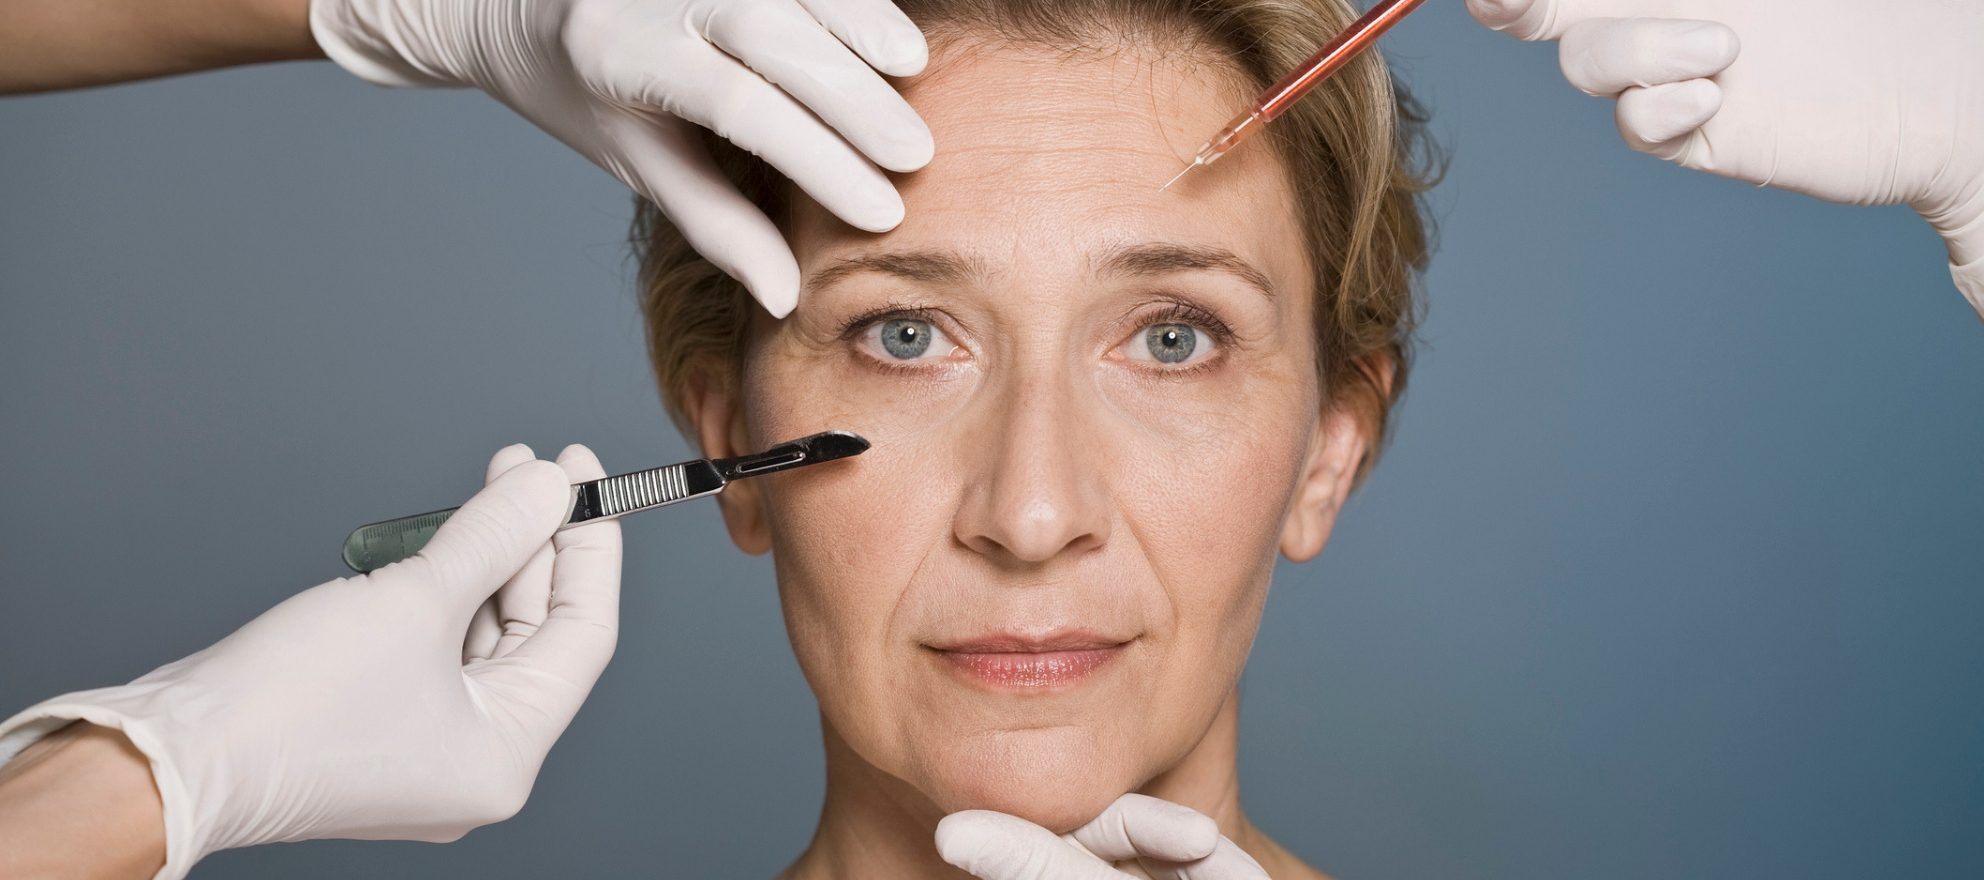 Why real estate agents turn to plastic surgery